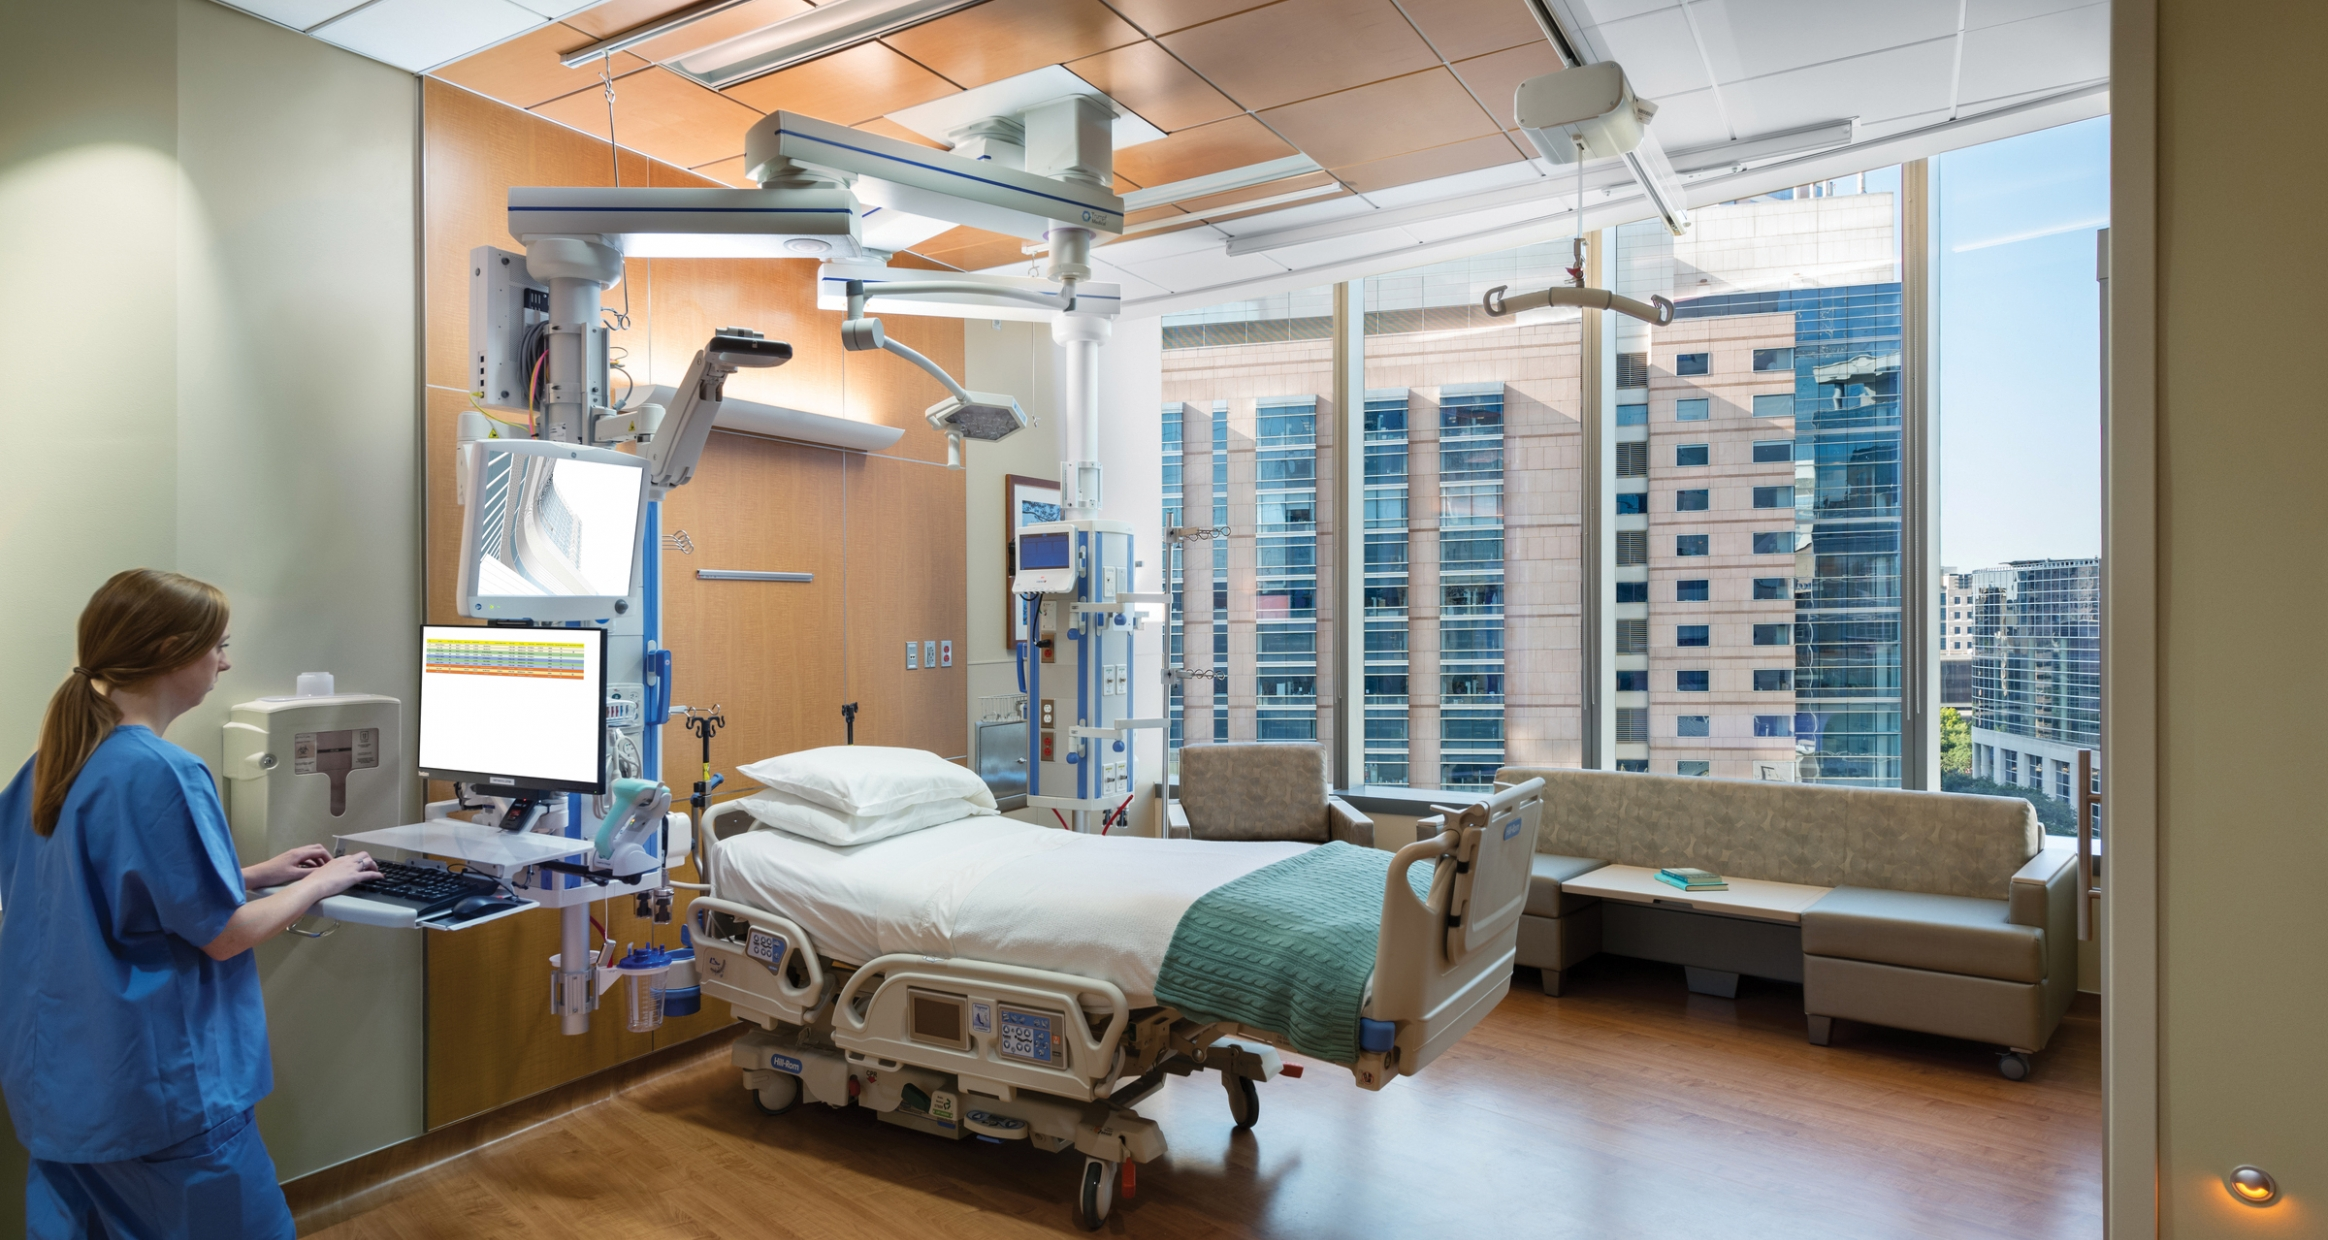 Walter Tower ICU